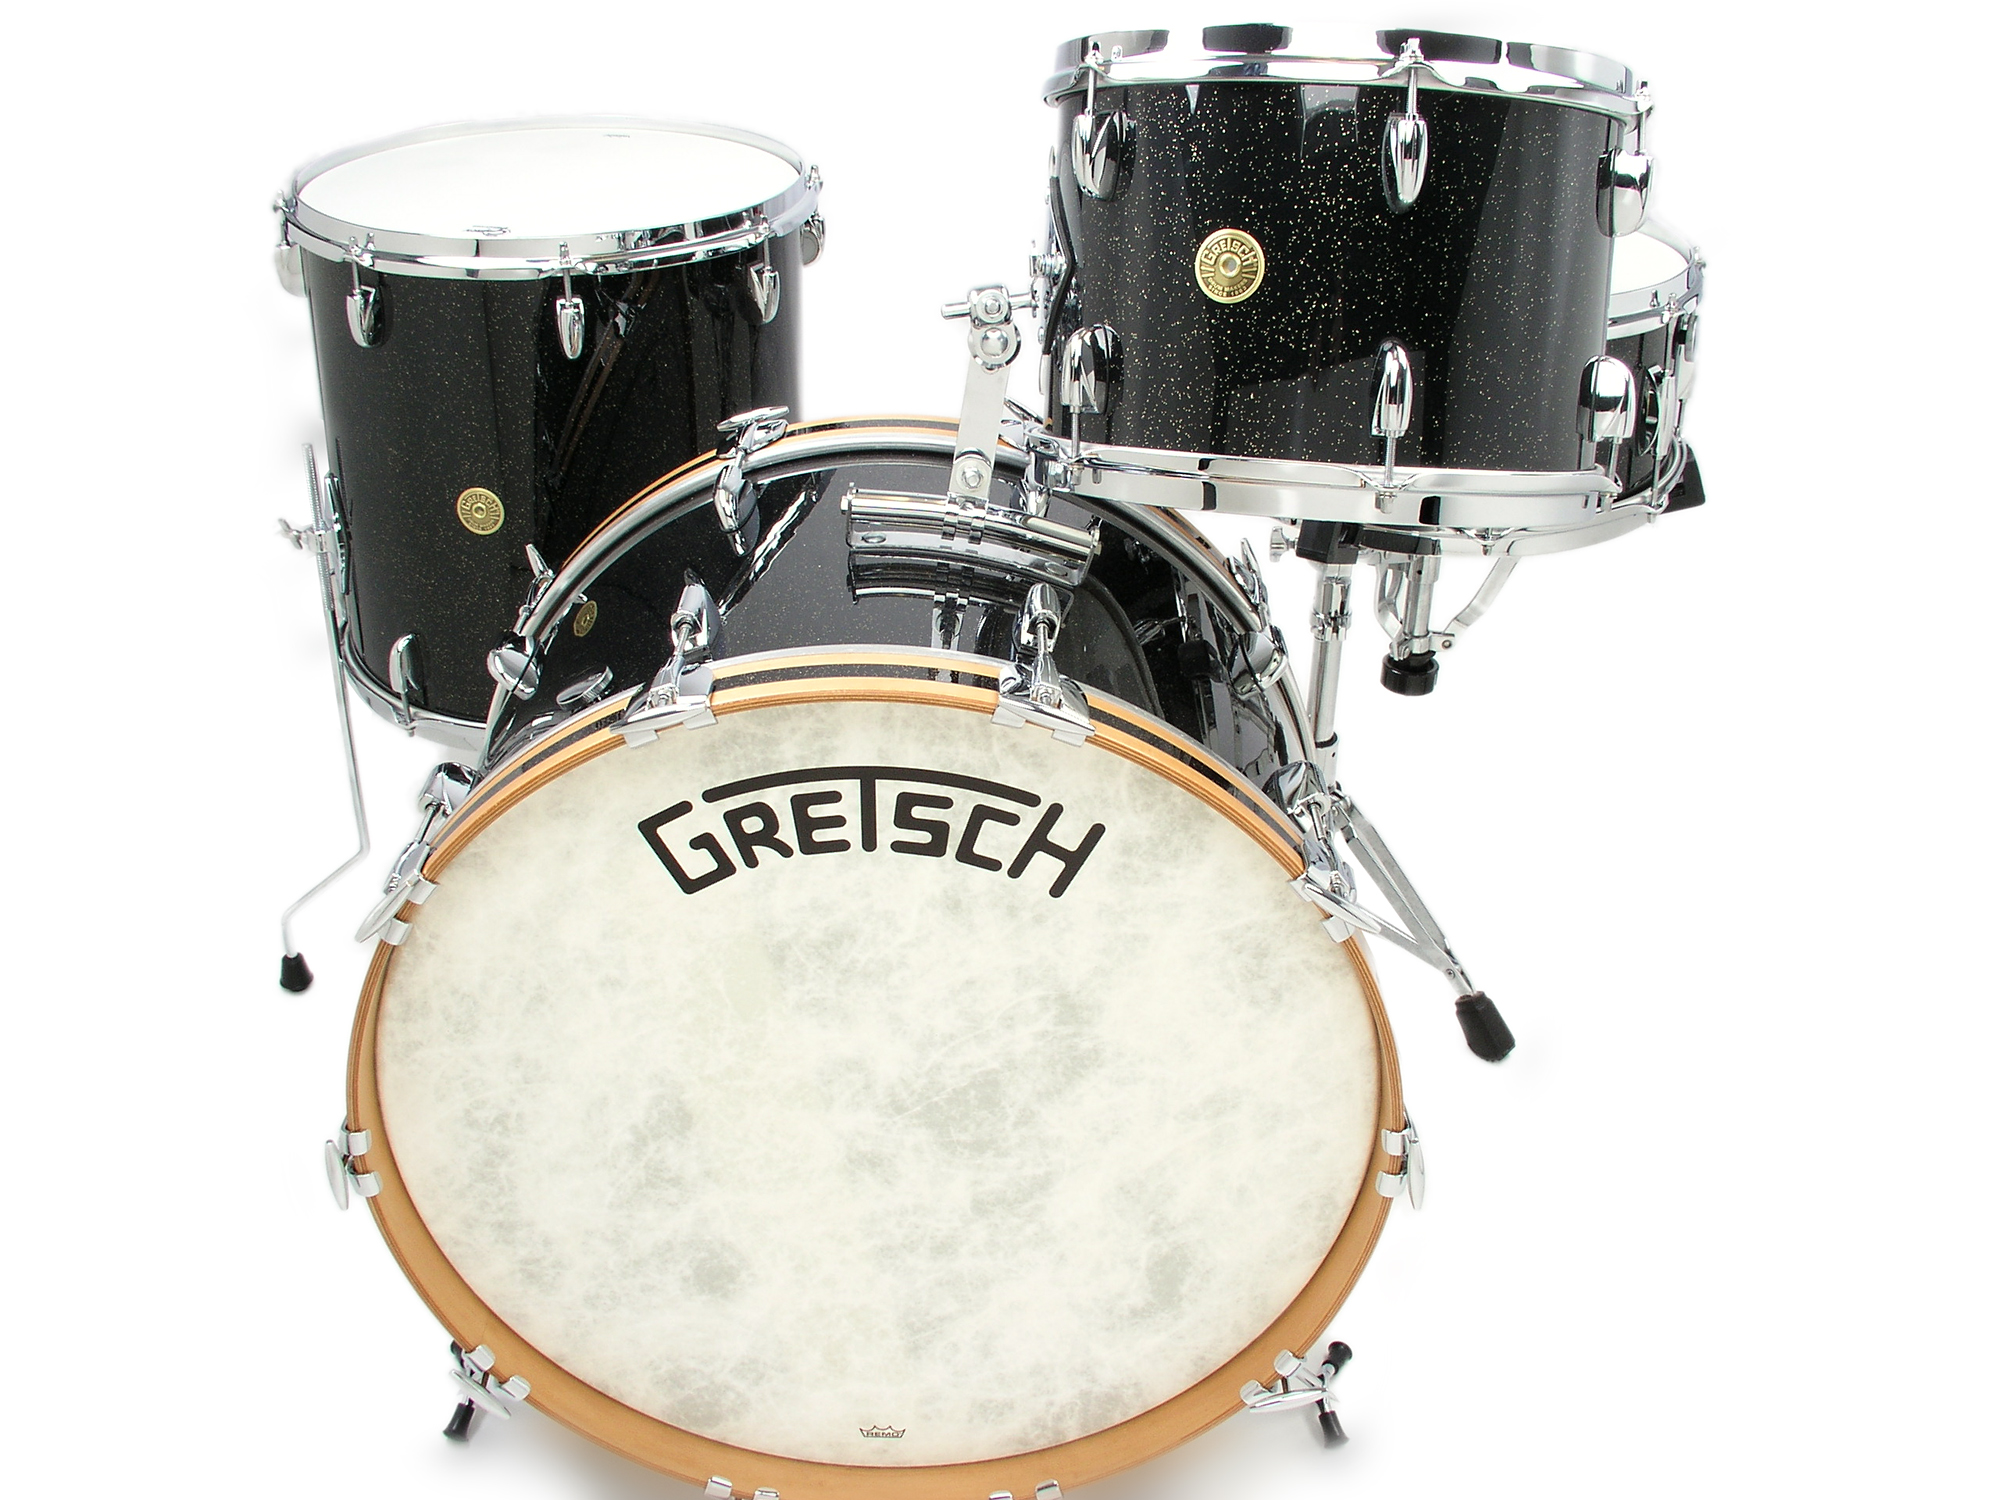 Gretsch 3pc Broadkaster Drum Set Anniversary Sparkle